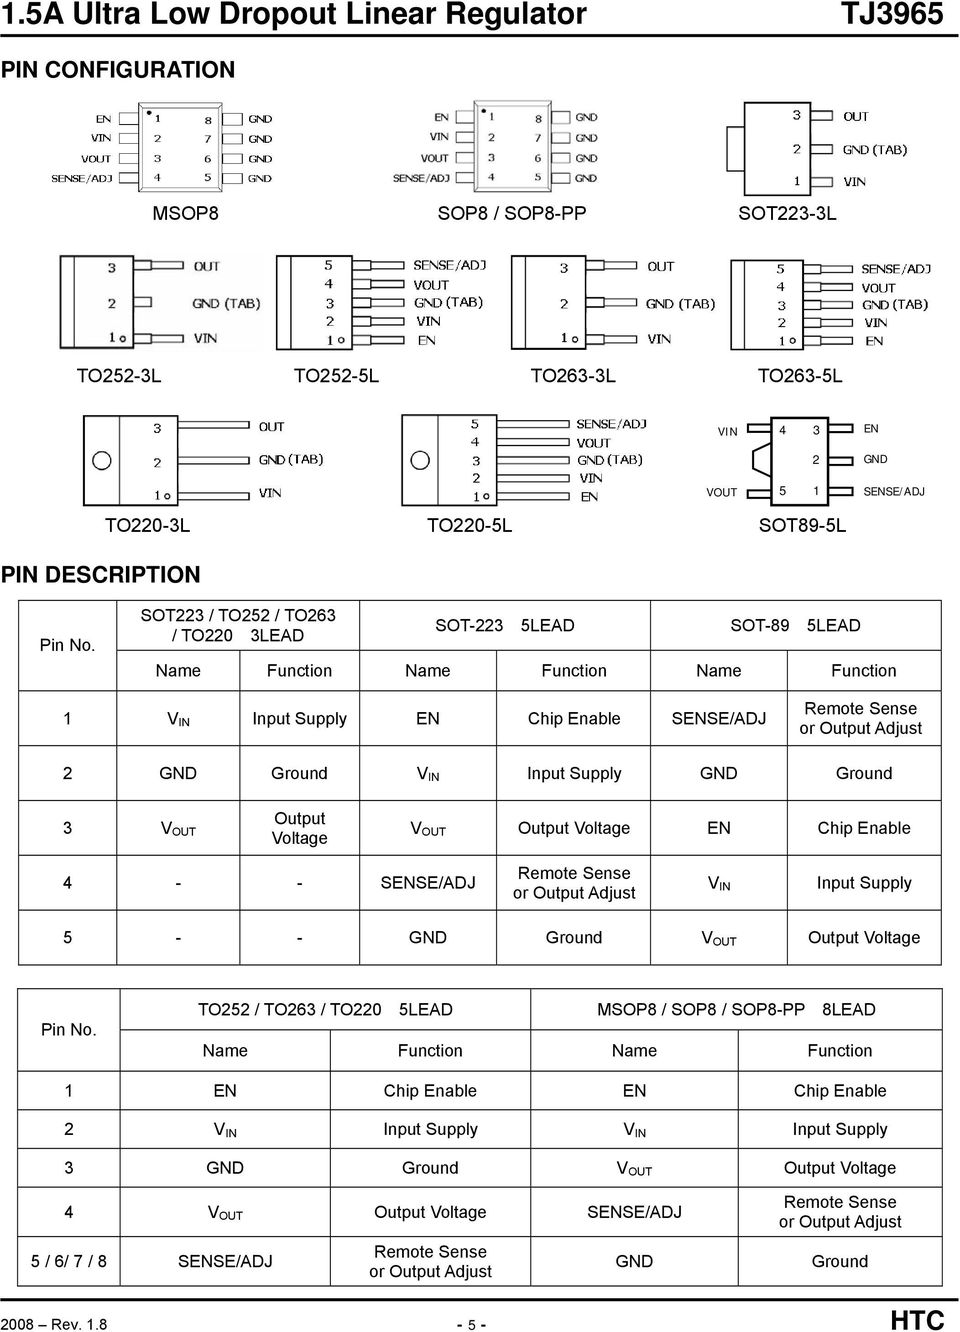 Supply Ground 3 V OUT Output Voltage V OUT Output Voltage Chip Enable 4 SSE/ADJ Remote Sense or Output Adjust V IN Input Supply 5 Ground V OUT Output Voltage Pin No.